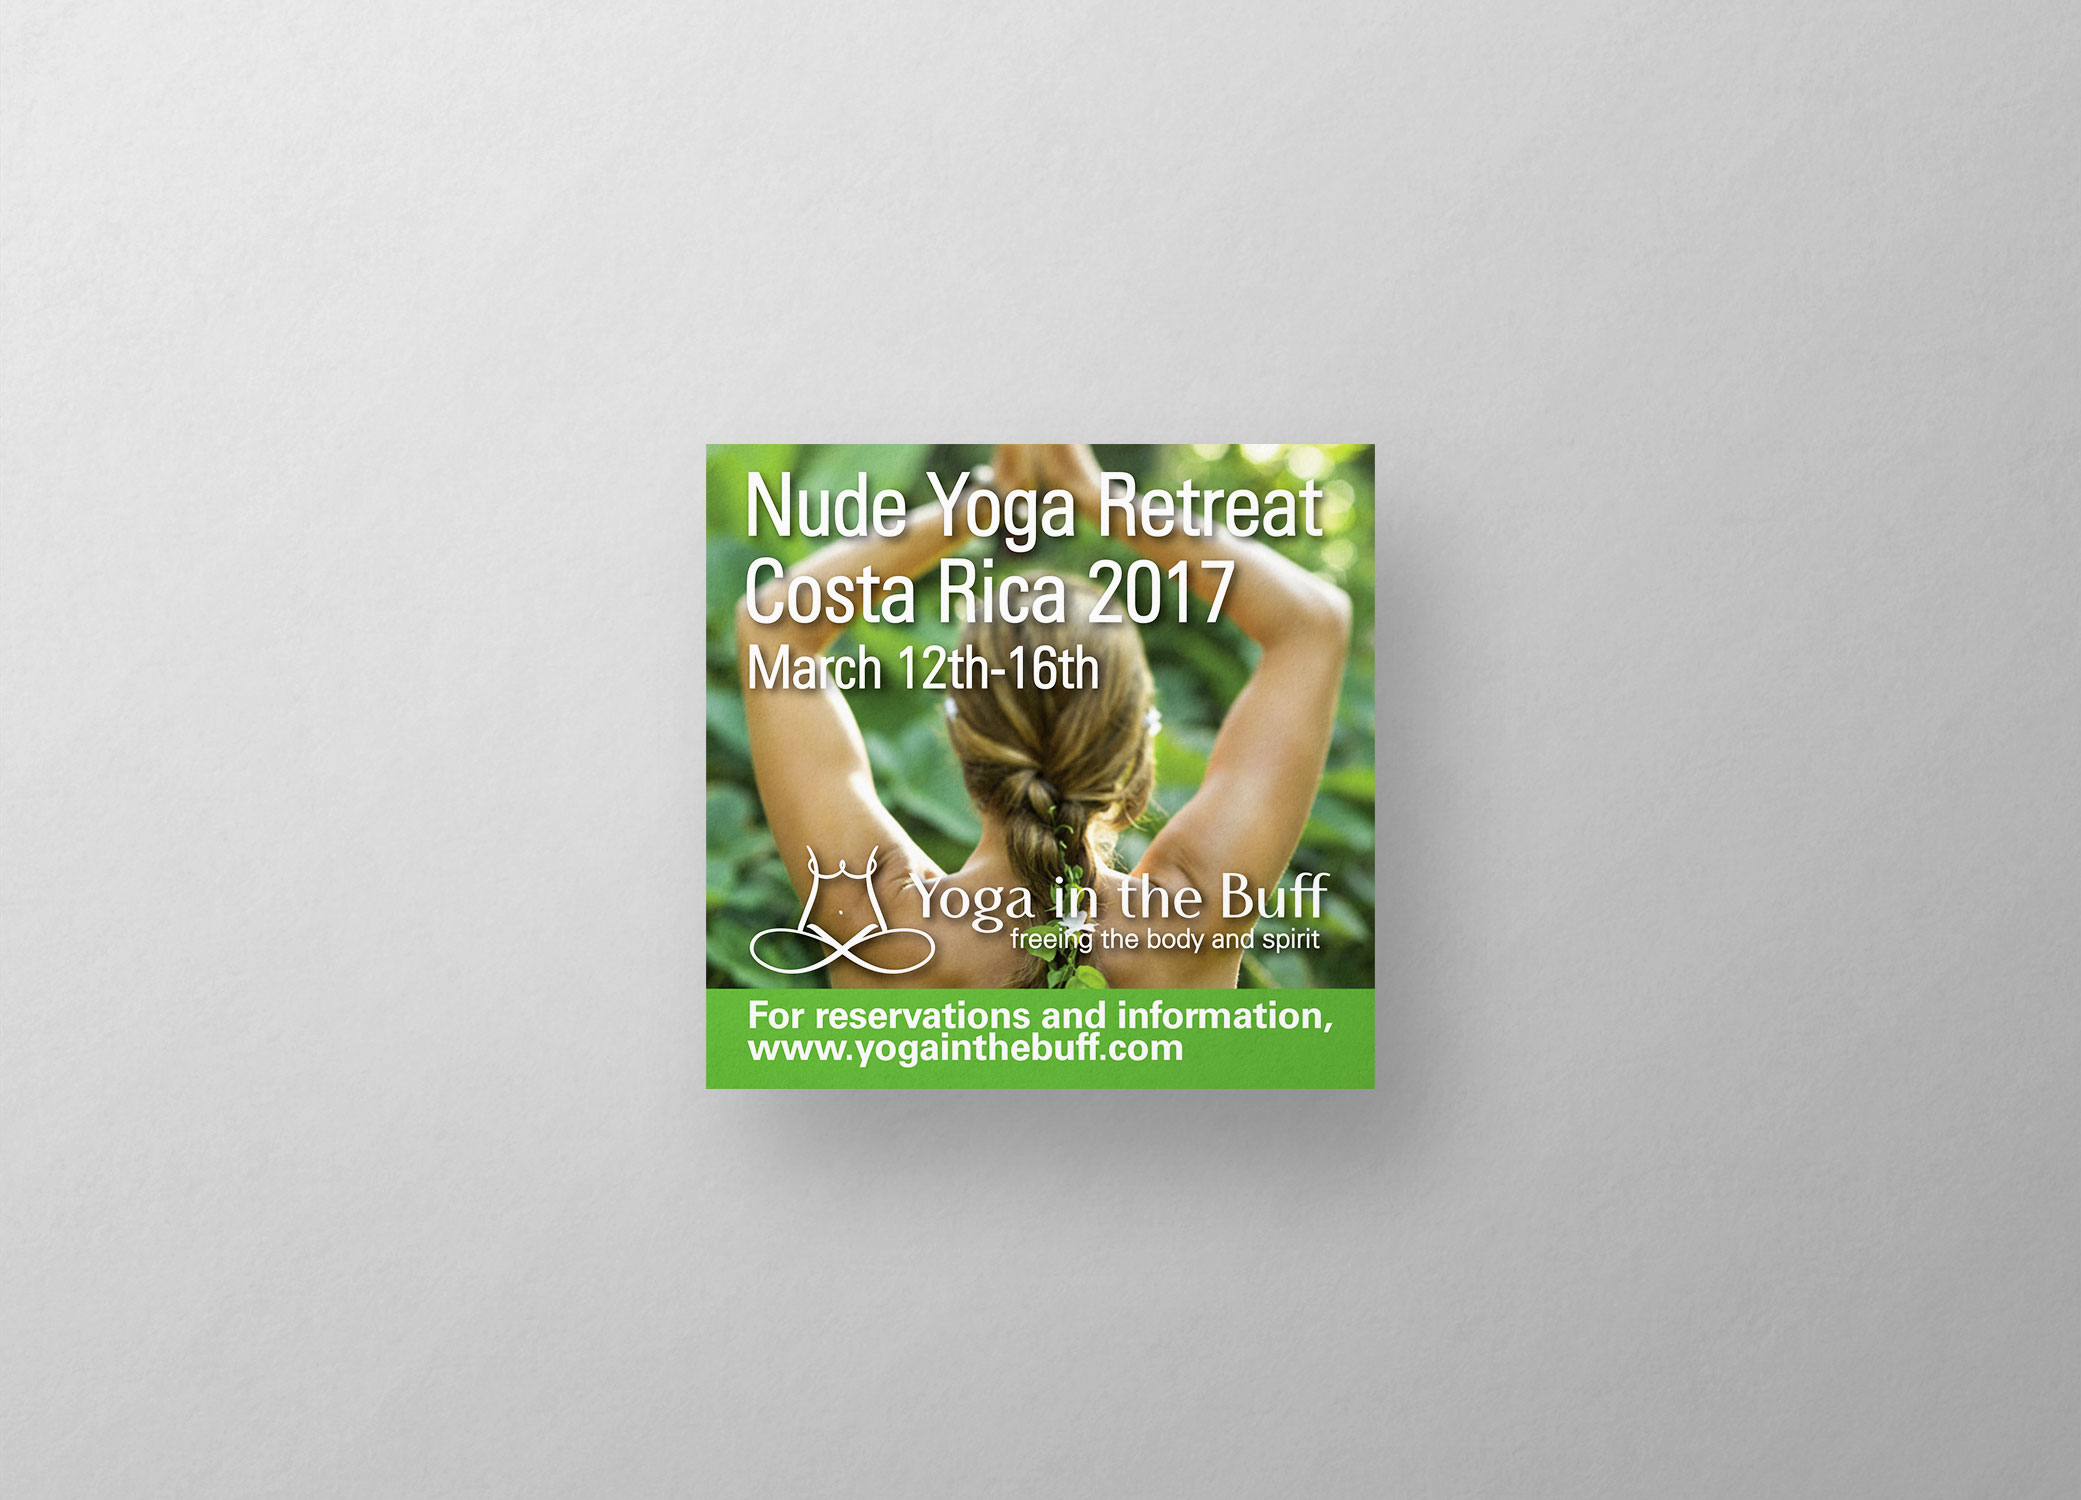 Yoga in the Buff logo ad design for nude yoga retreat in Costa Rica showing back of a woman in raised hands pose.